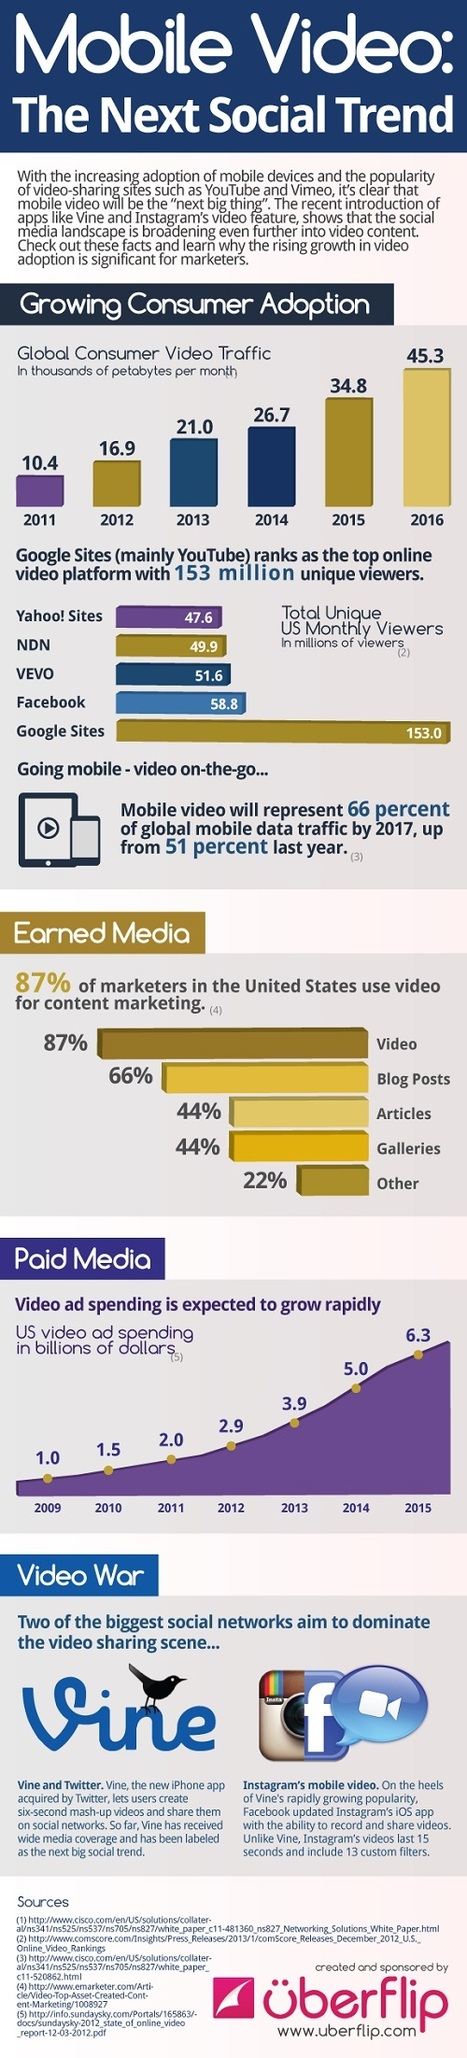 Mobile Video : The Next Social Trend   Digital Storytelling 101: Creating an Effective and Informative Video   Scoop.it